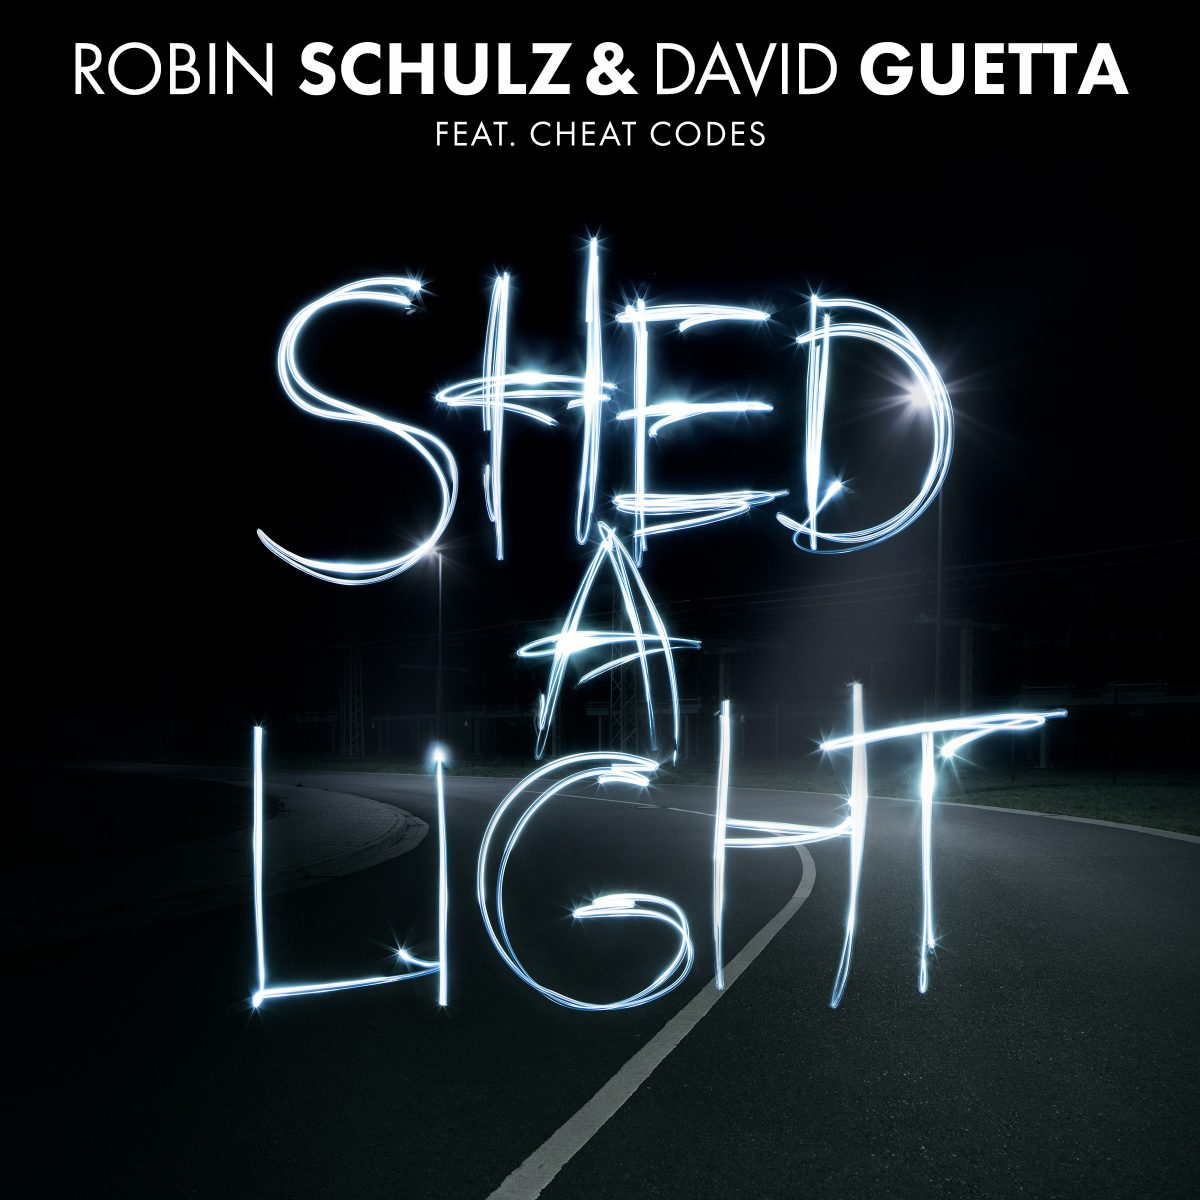 robin-Schulz-David-Guetta-Shed-a-light-EDMred David Guetta y Robin Schulz colaboran en 'Shed A Light'